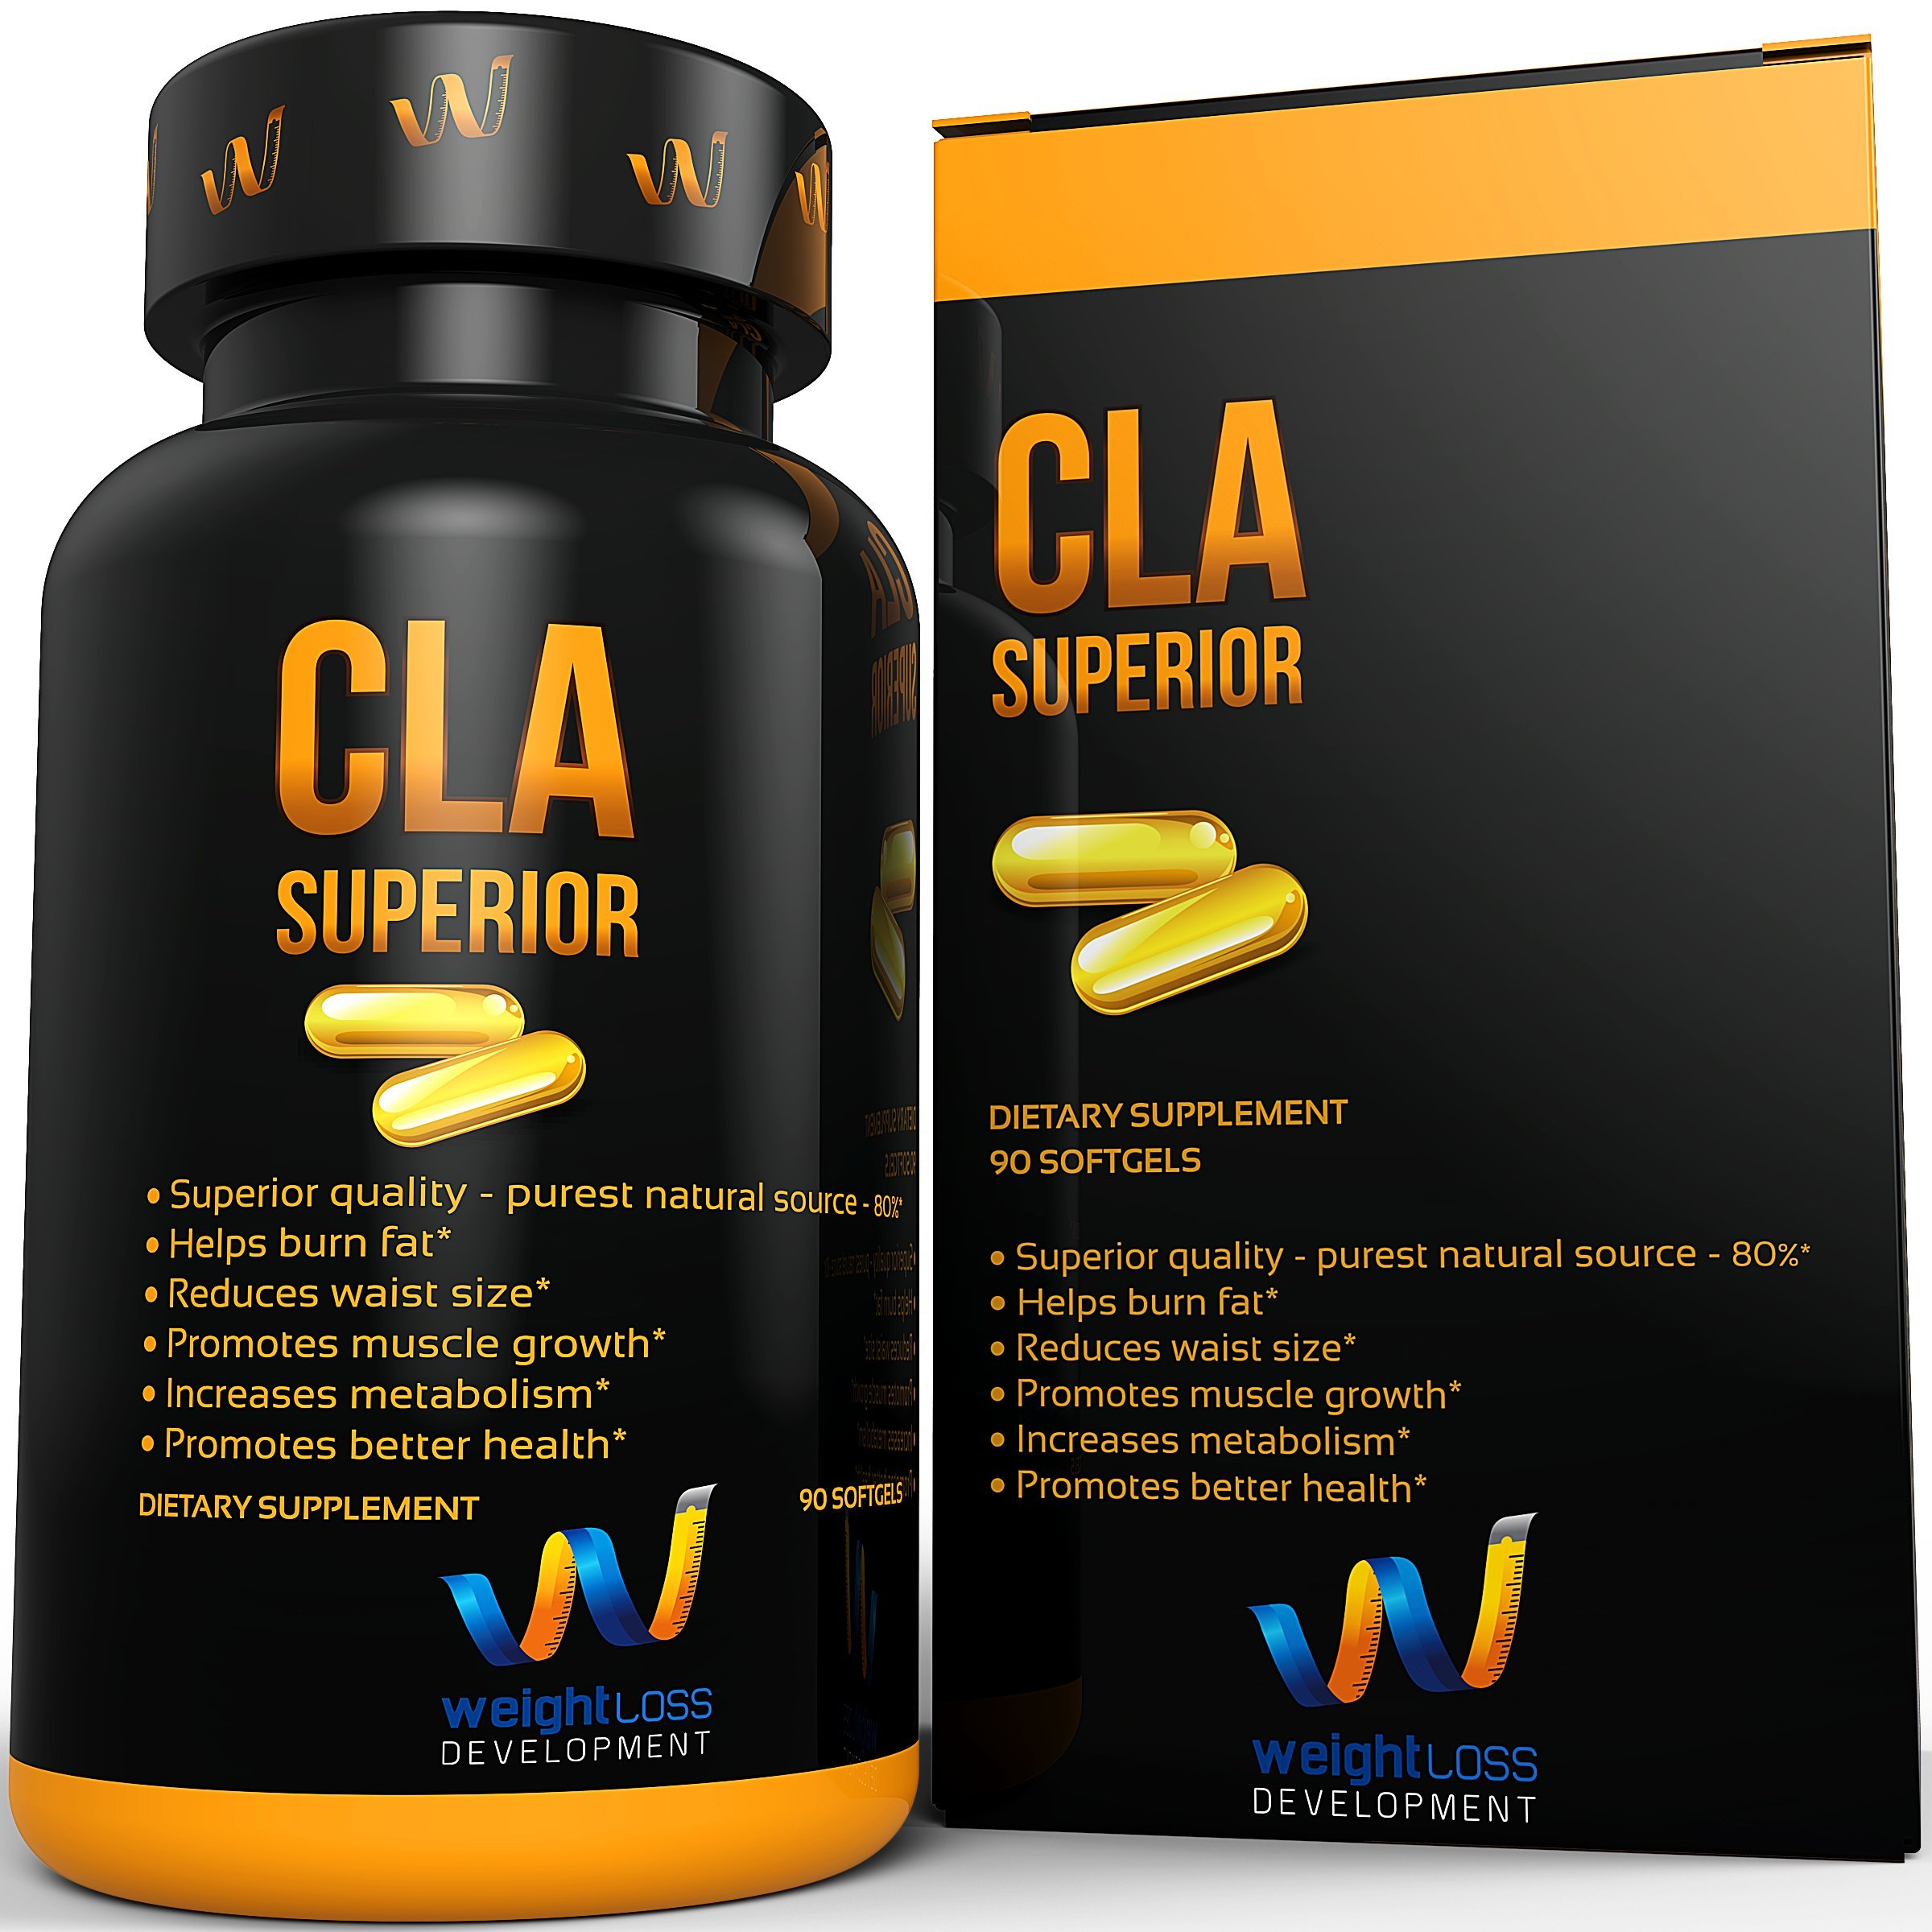 Amazon.com: FAT BURNER SUPERIOR Weight Loss Supplements - Garcinia Cambogia BioPerine Blend